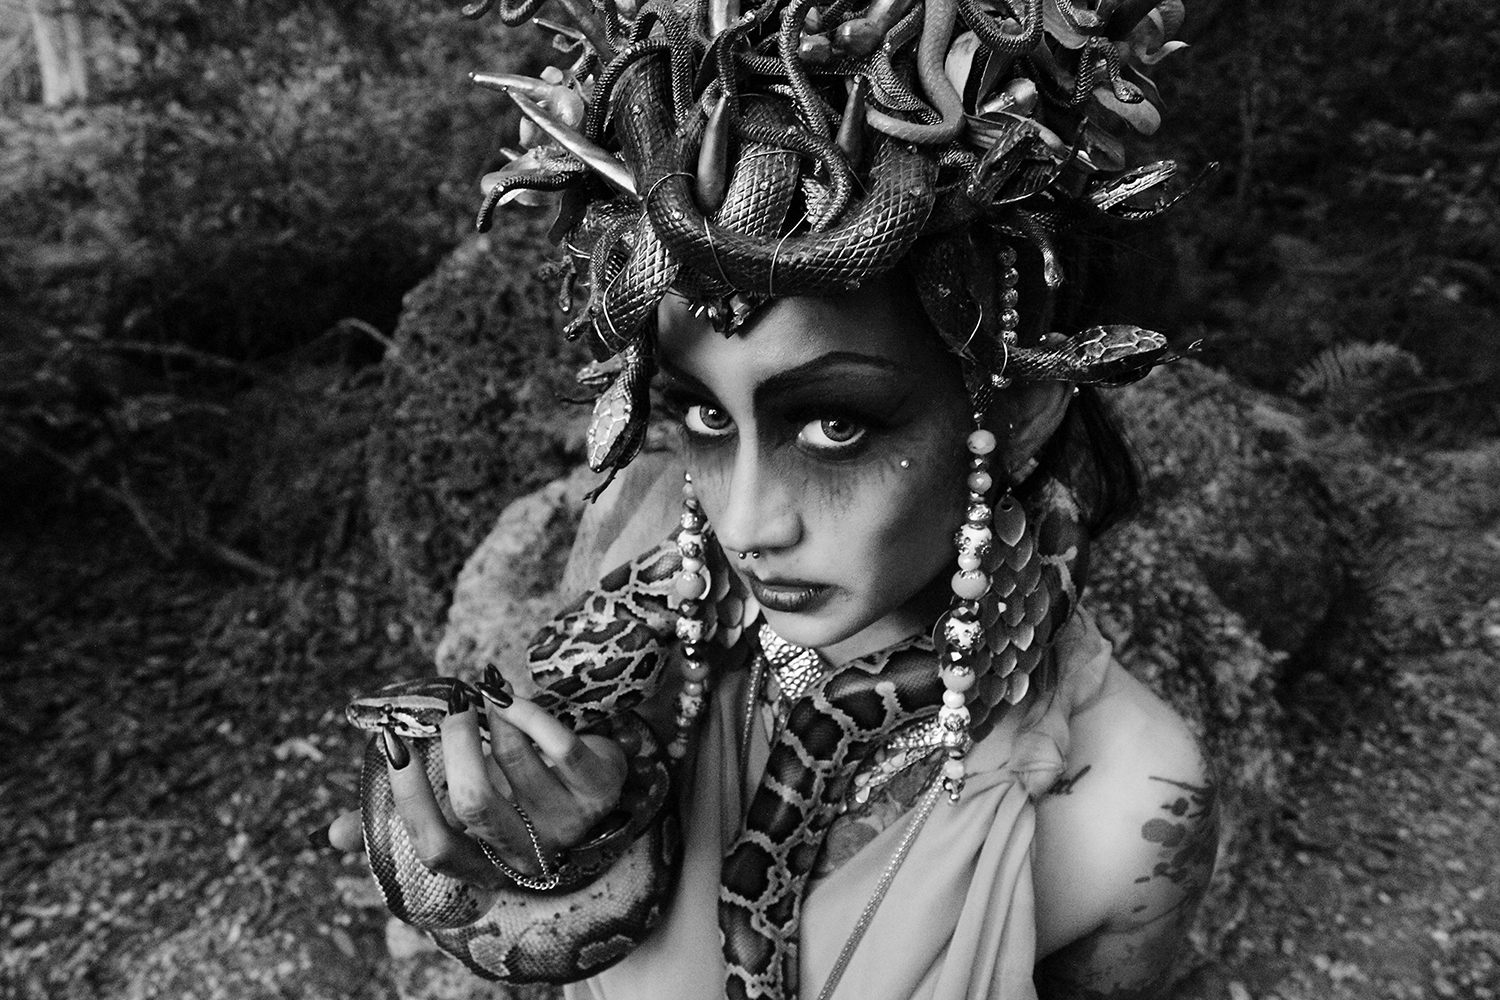 Medusa creative director darkbeauty